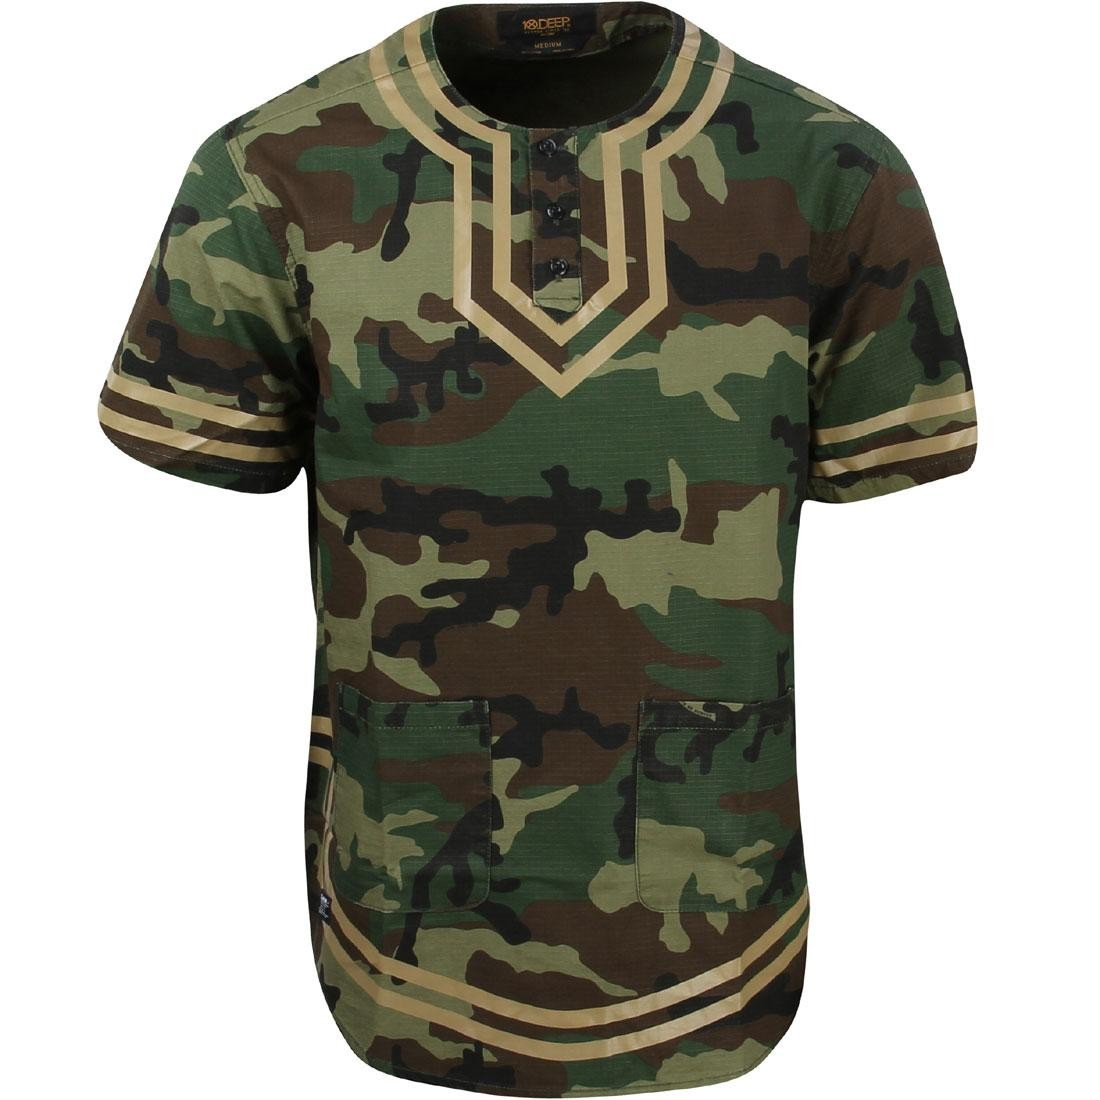 10 Deep Men Dashiki Shirt (camo / woodland)